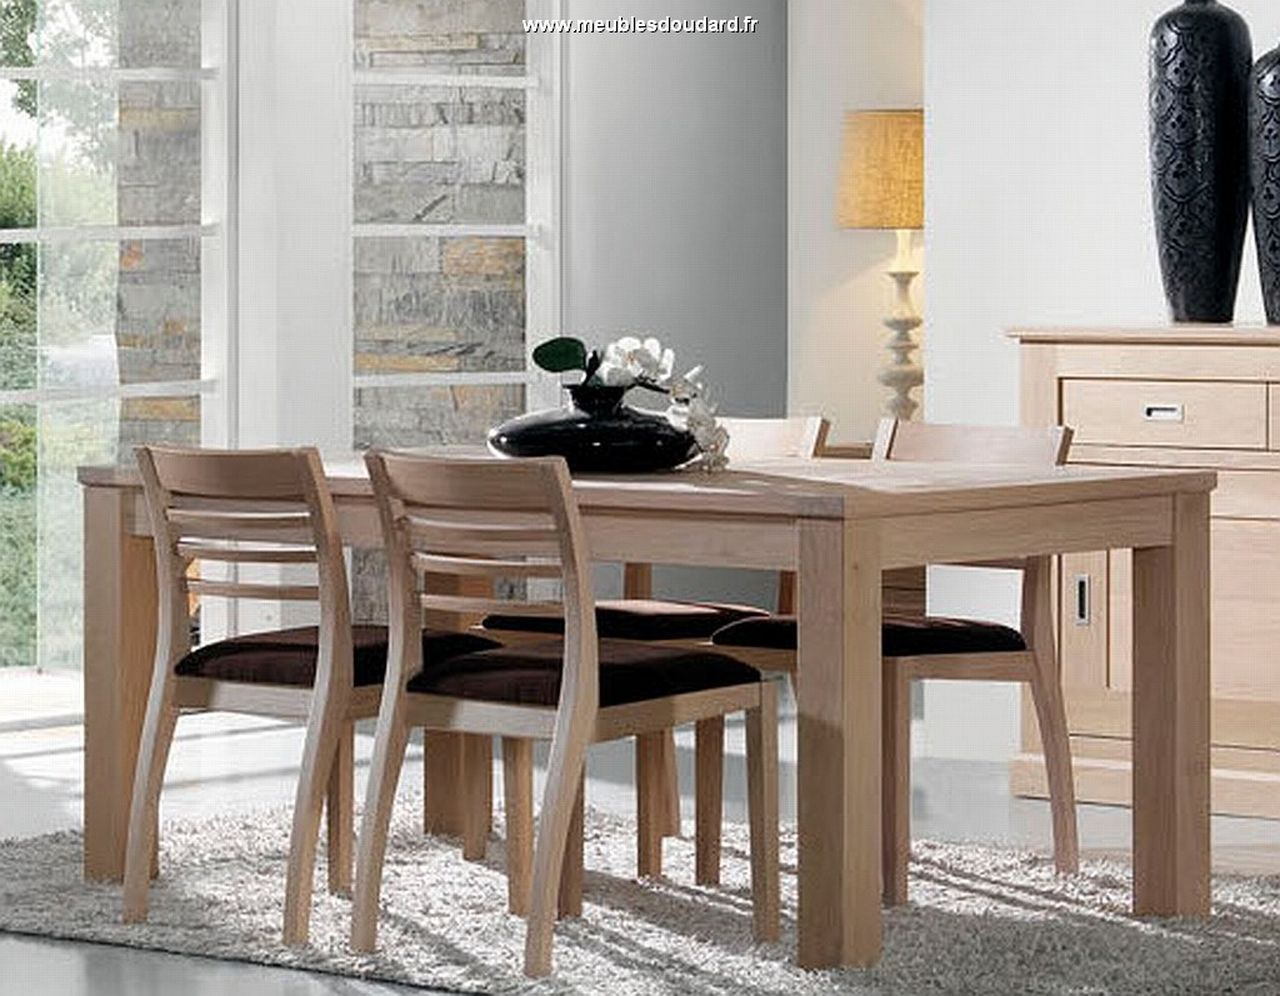 Meubles contemporains en bois massif for Table salle a manger contemporaine